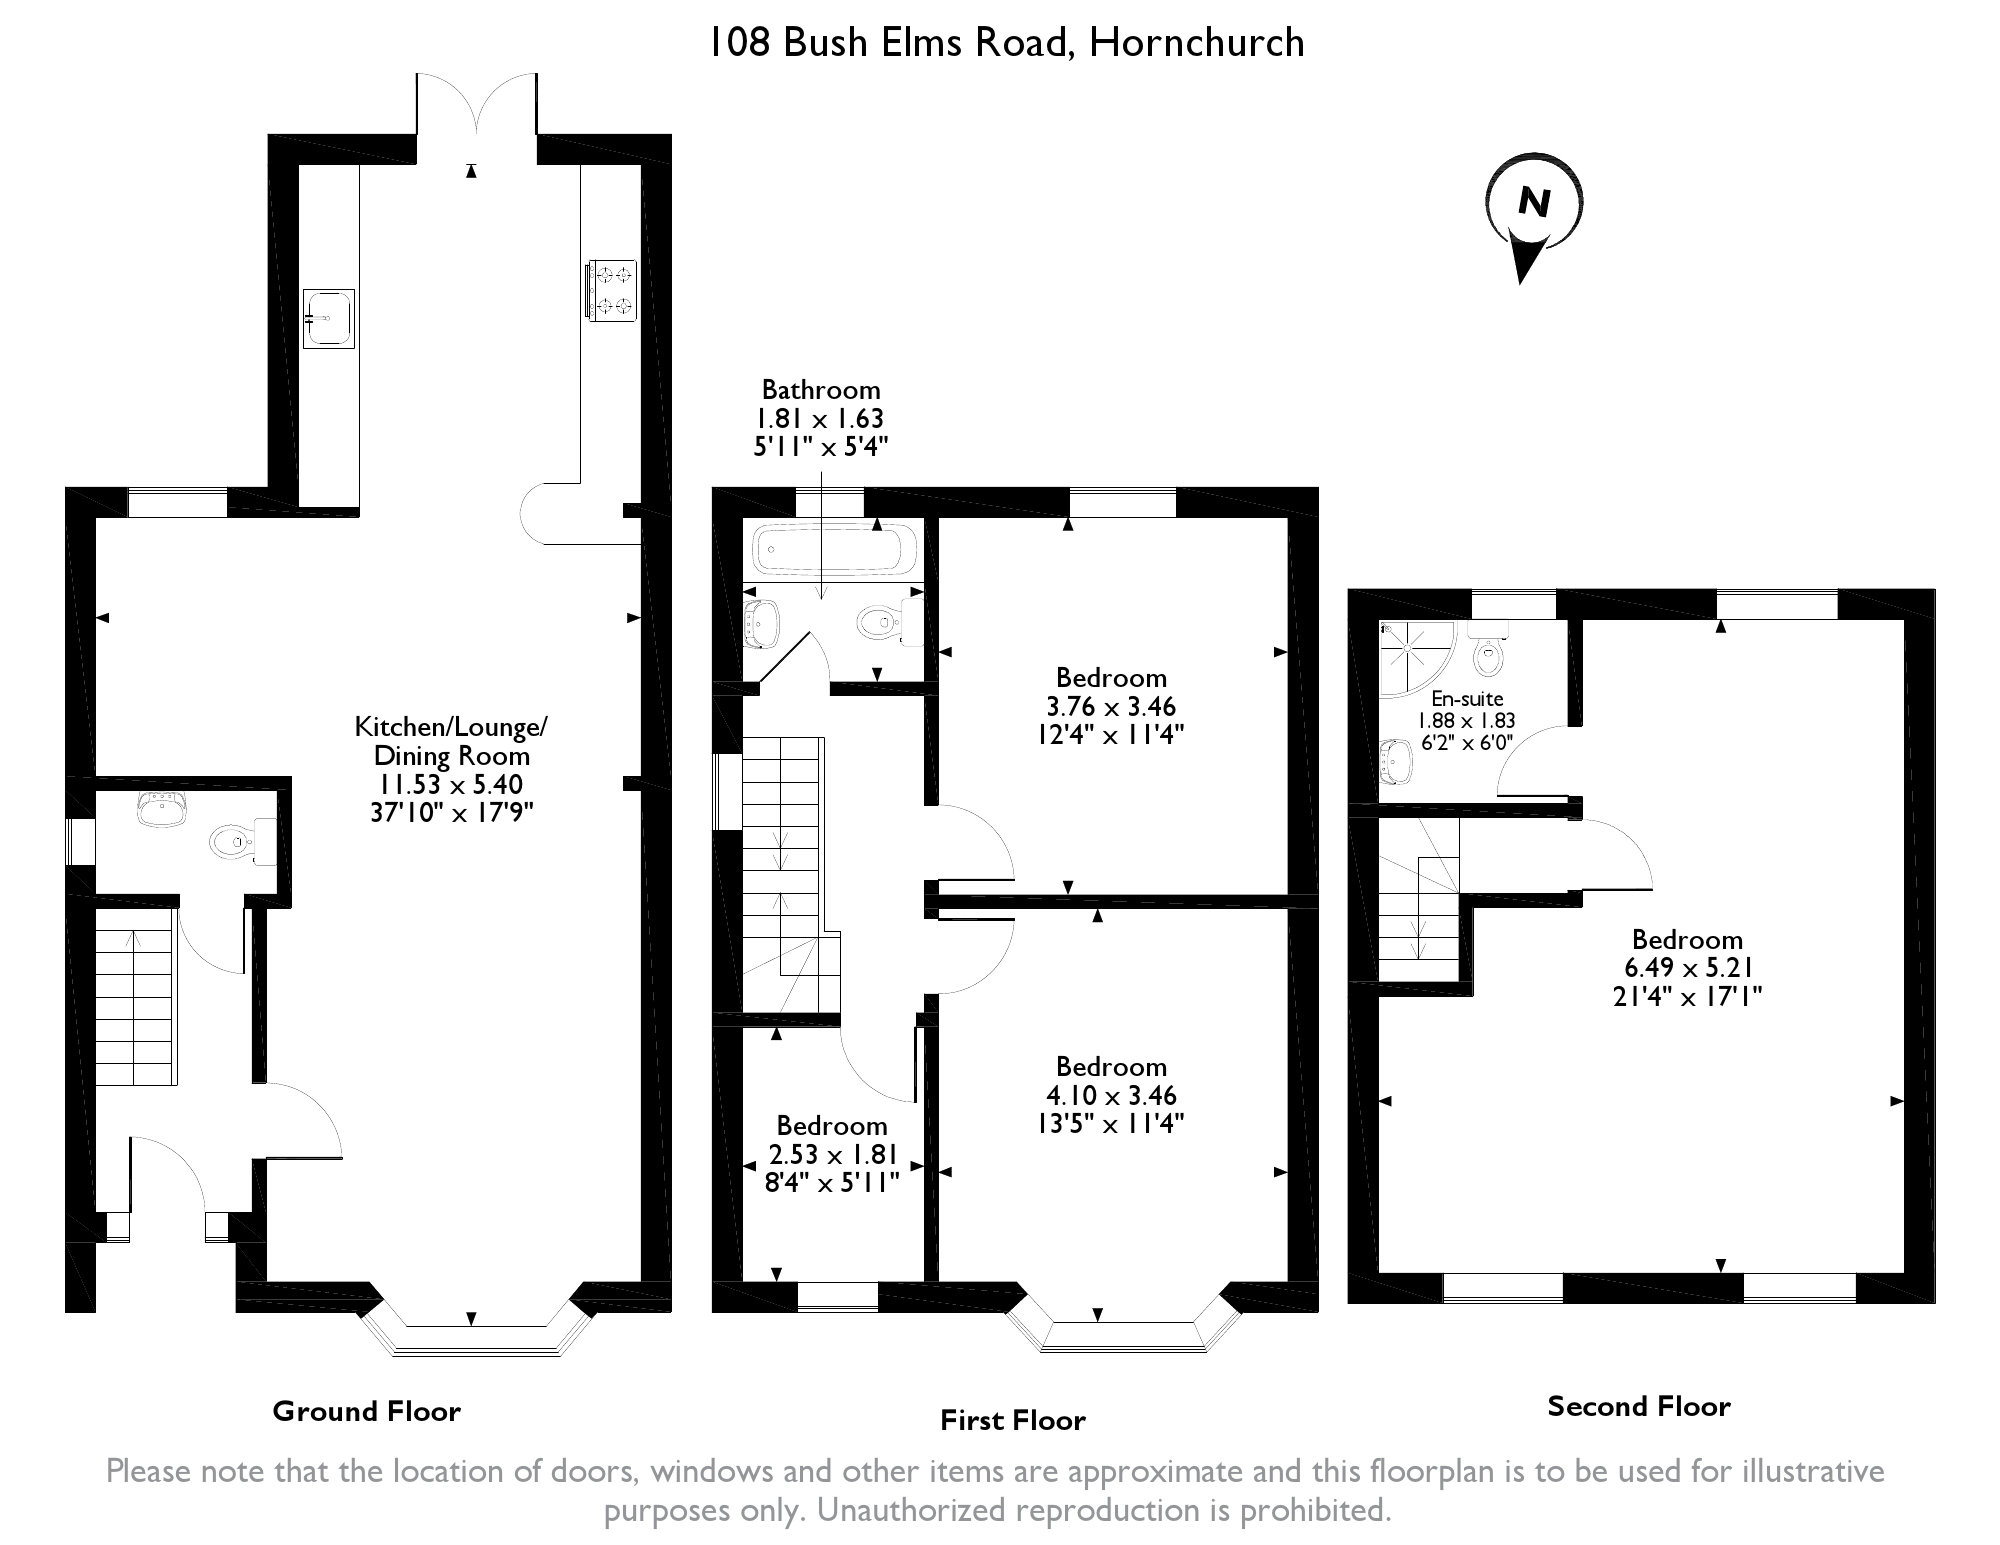 Bush Elms Road, Hornchurch, RM11 floor plan